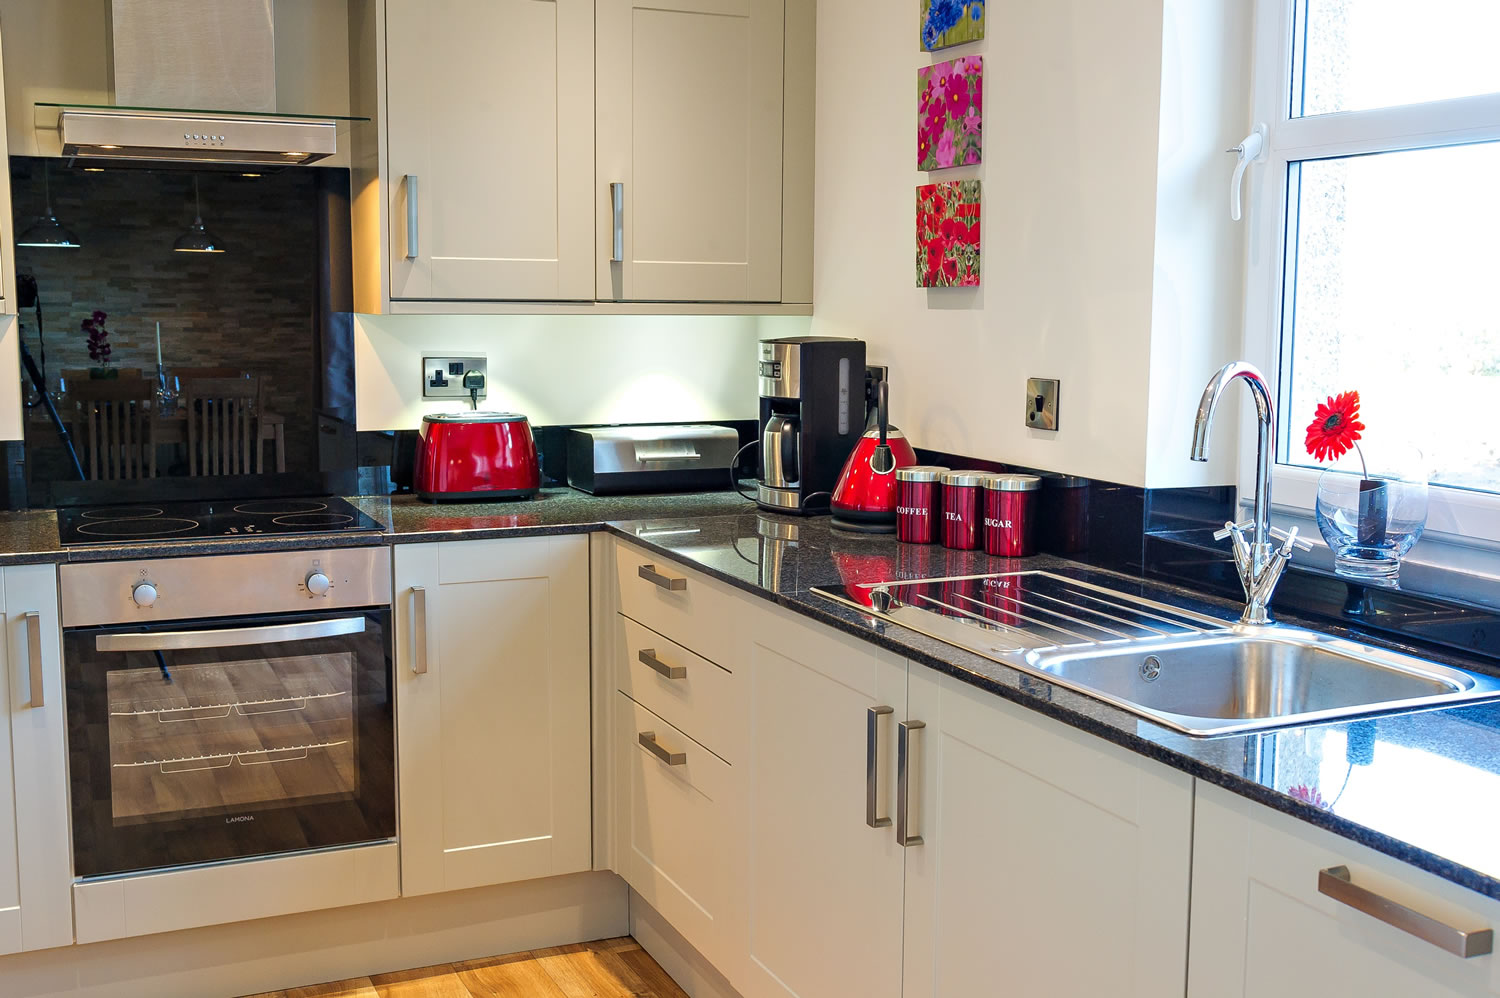 Self catering holiday cottages St Andrews